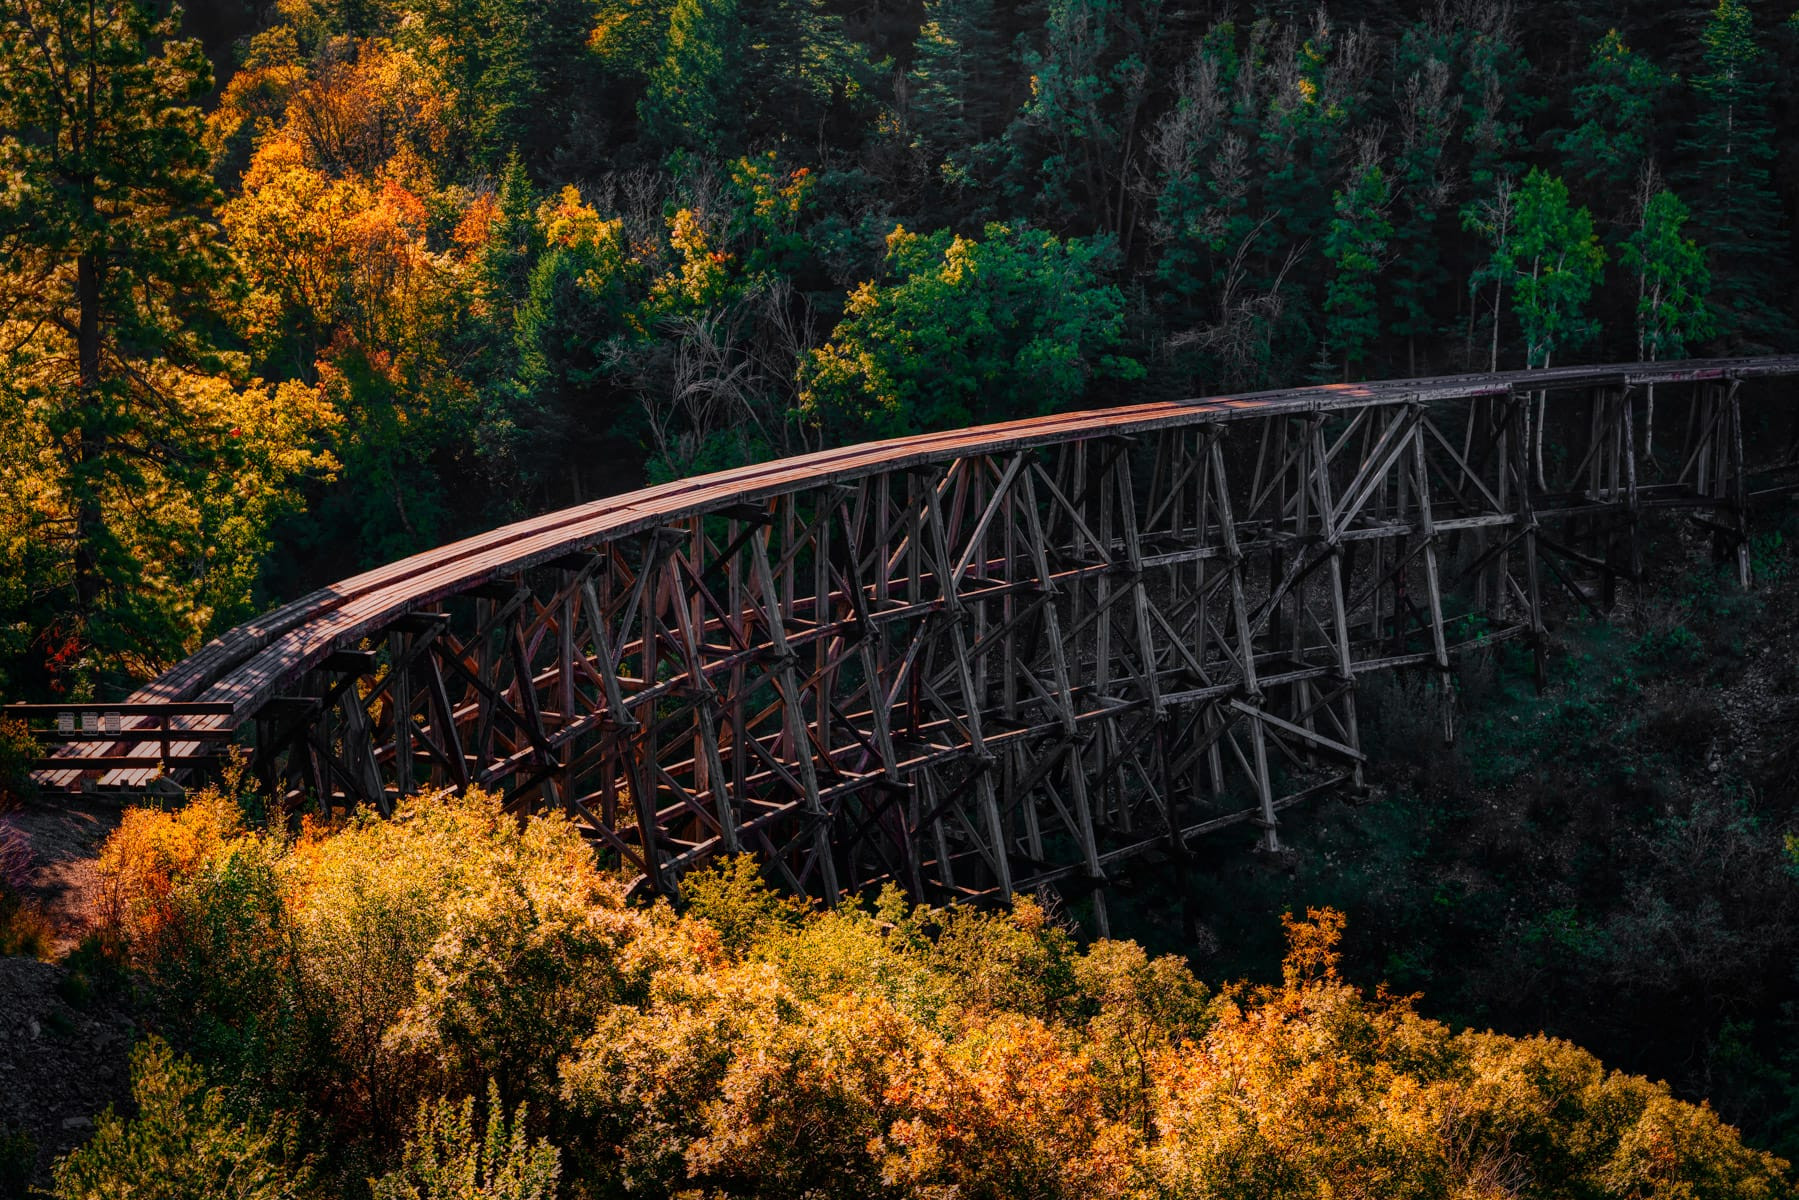 The abandoned Mexican Canyon Trestle crosses a gorge in the mountains near Cloudcroft, New Mexico.